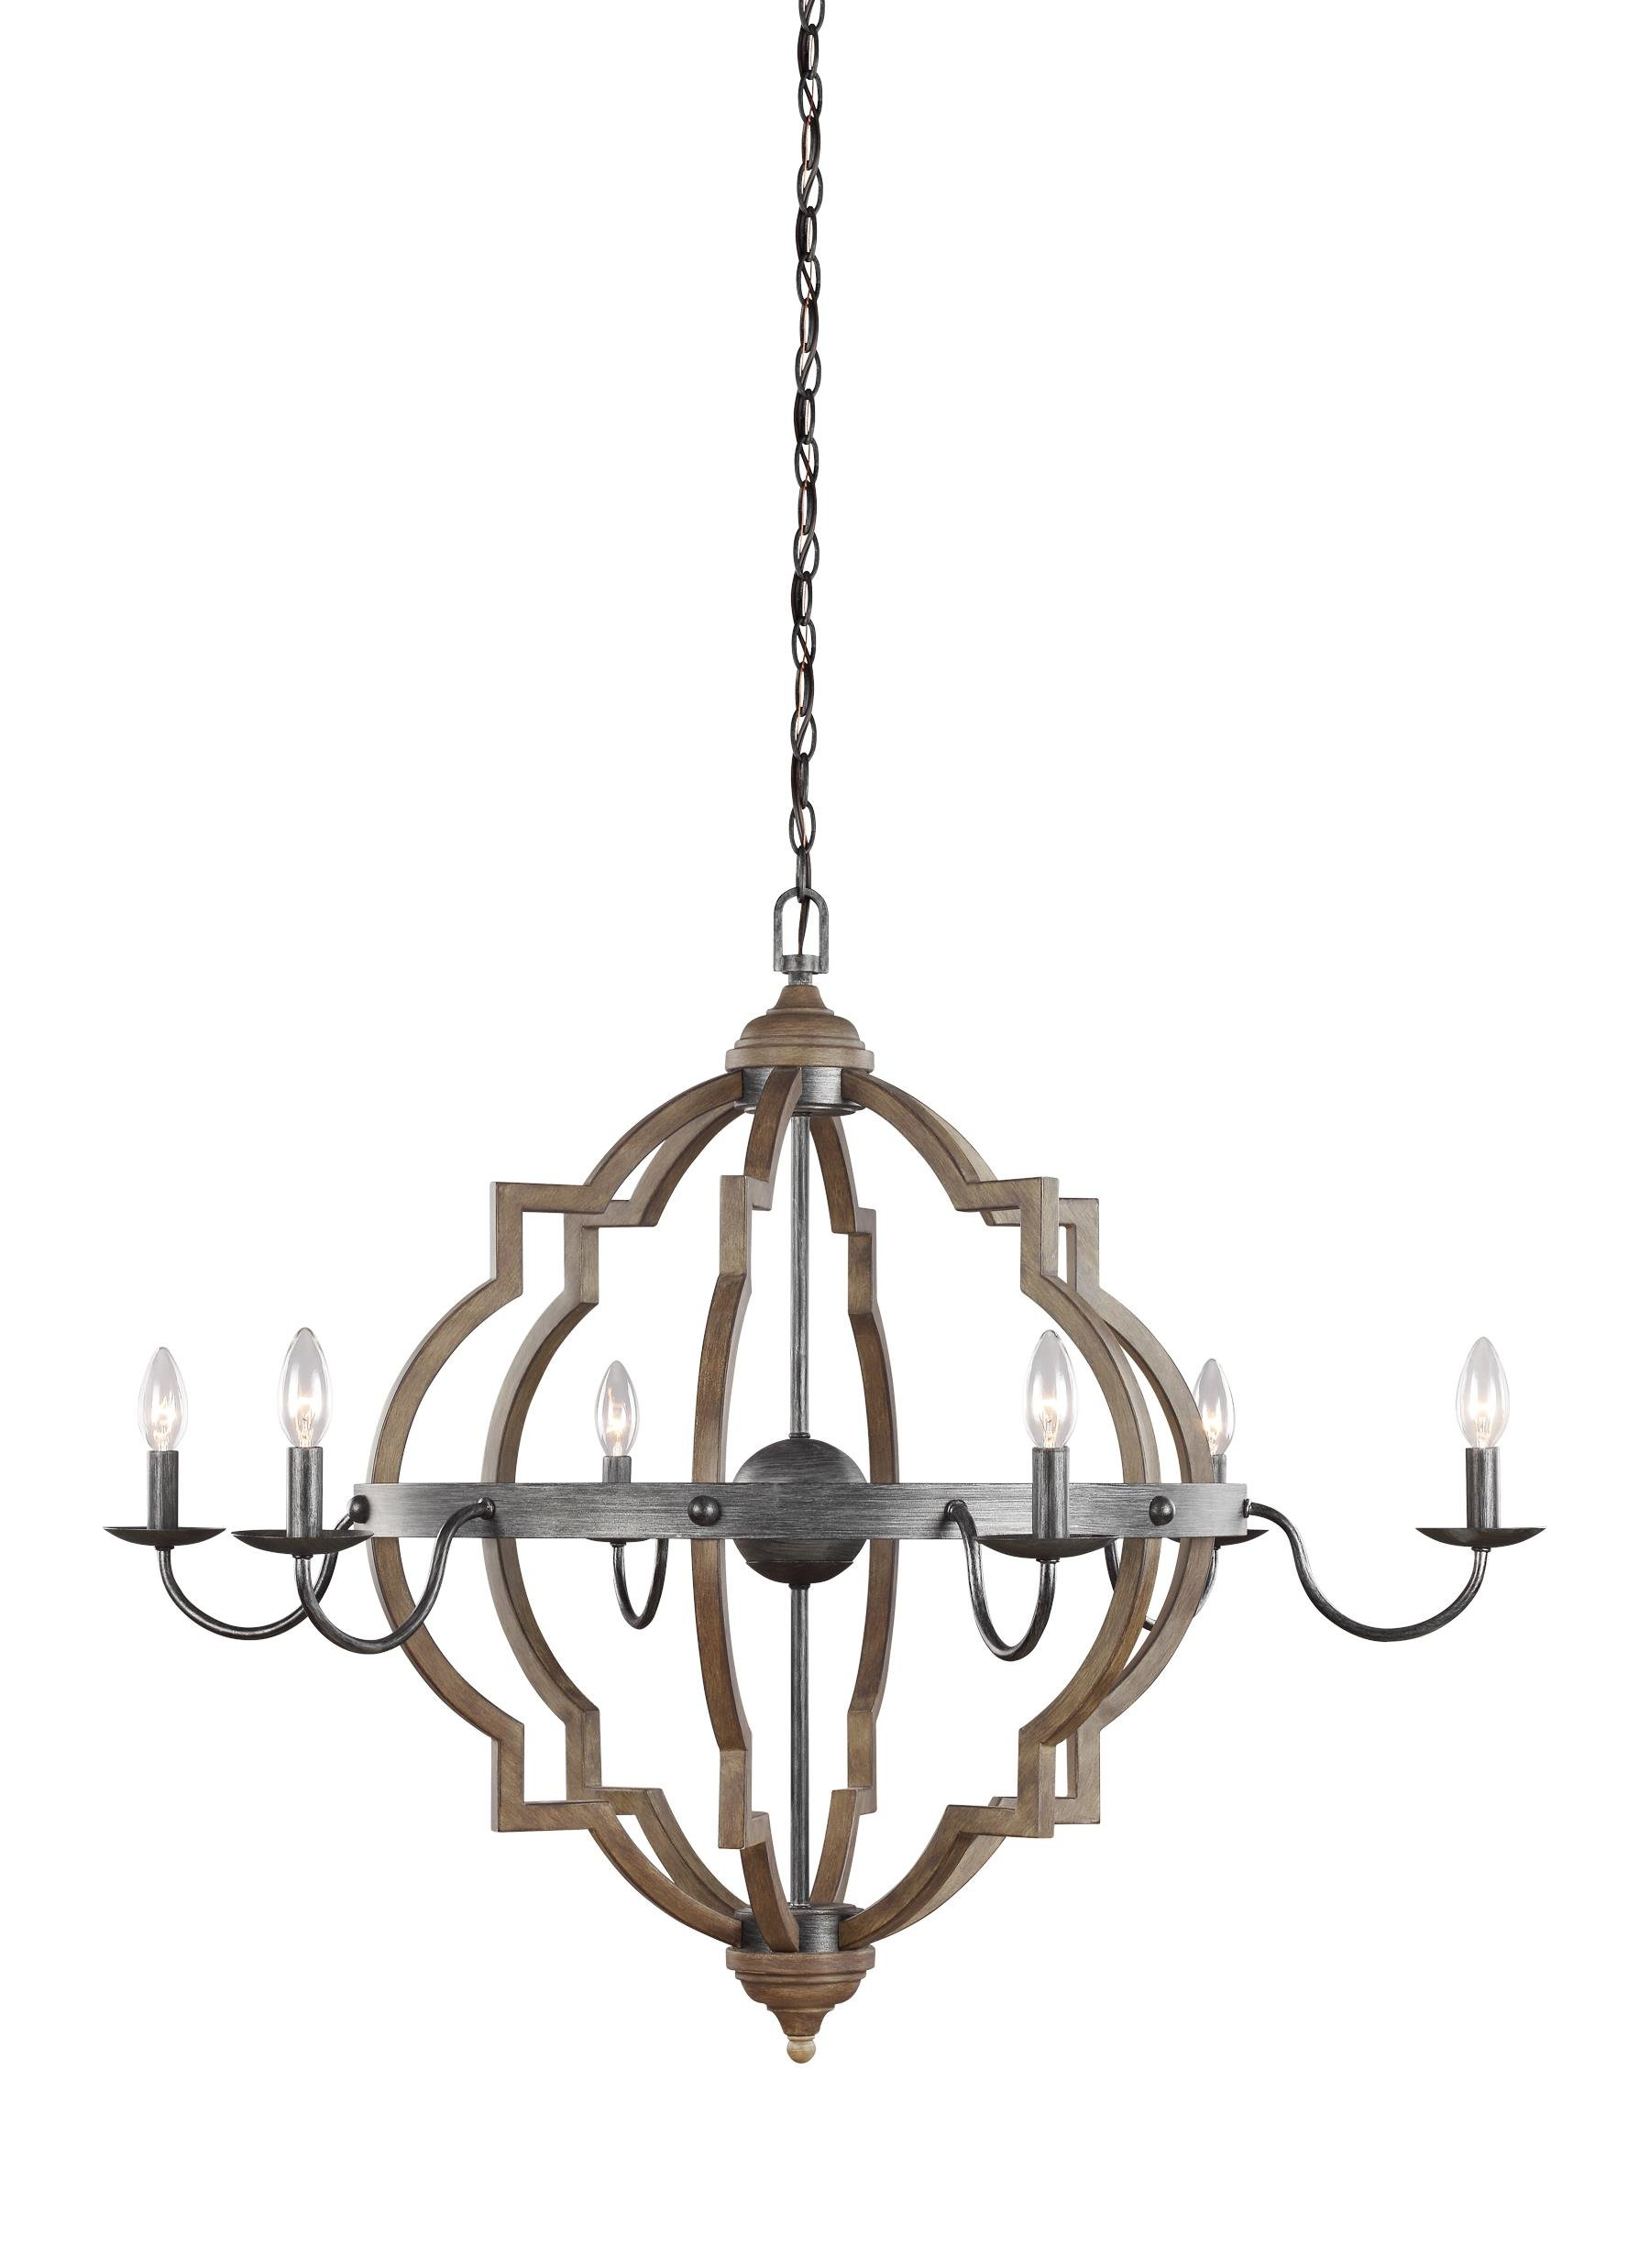 Donna 6 Light Candle Style Chandelier Within 2020 Hamza 6 Light Candle Style Chandeliers (View 4 of 20)